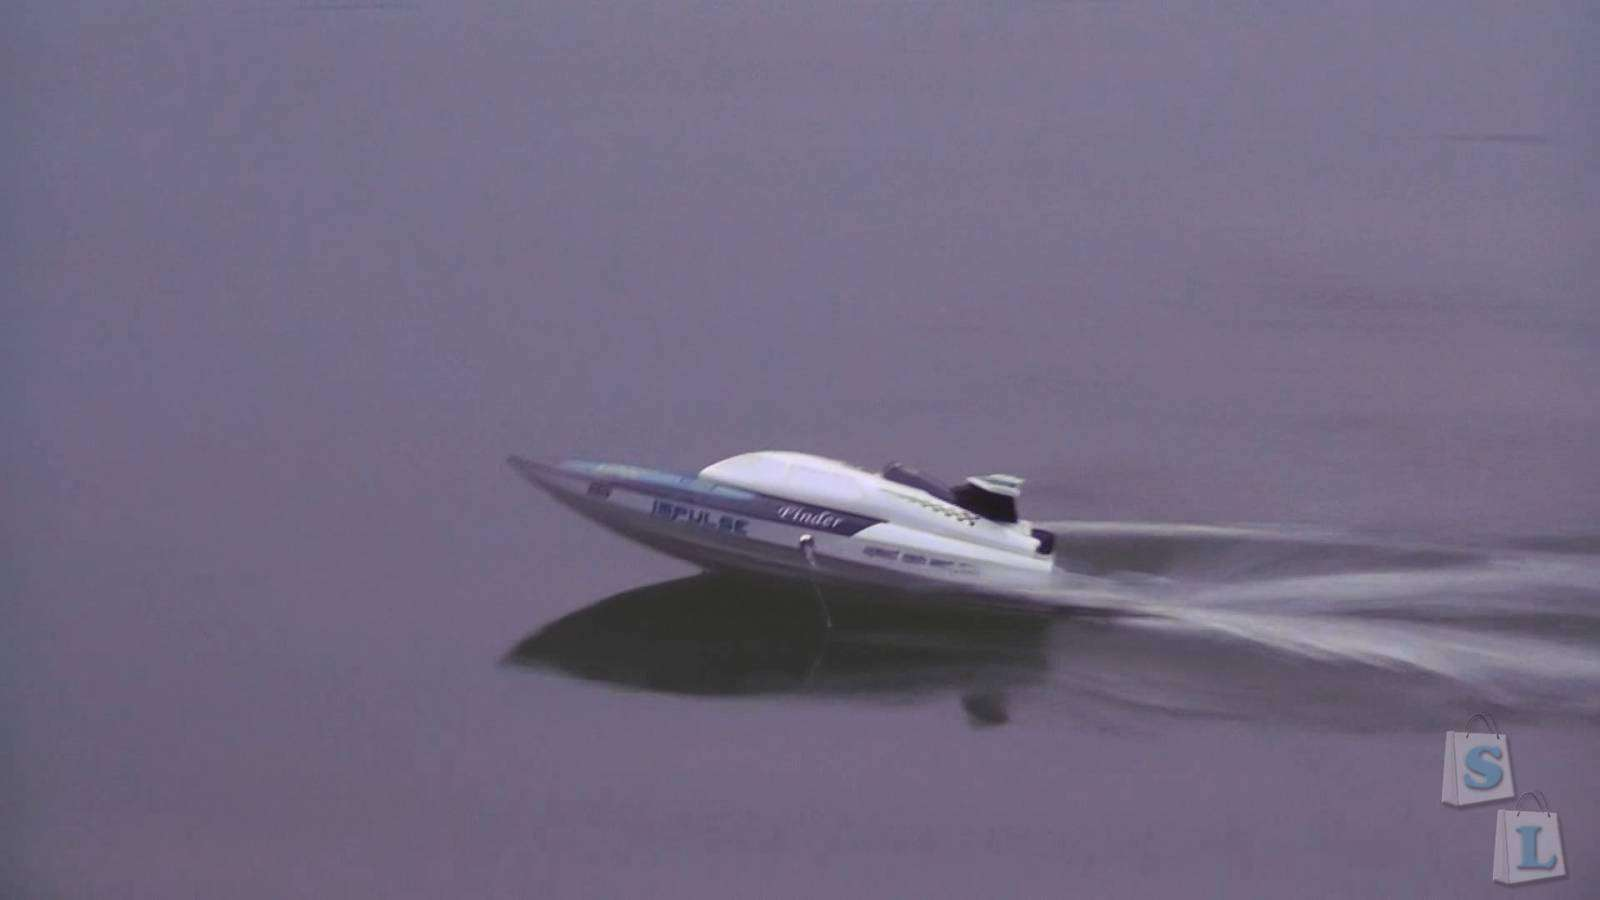 CooliCool: WLtoys WL912 2.4GHz, 2Ch High Speed Racing RC Boat with Water-cooling system (RTR)